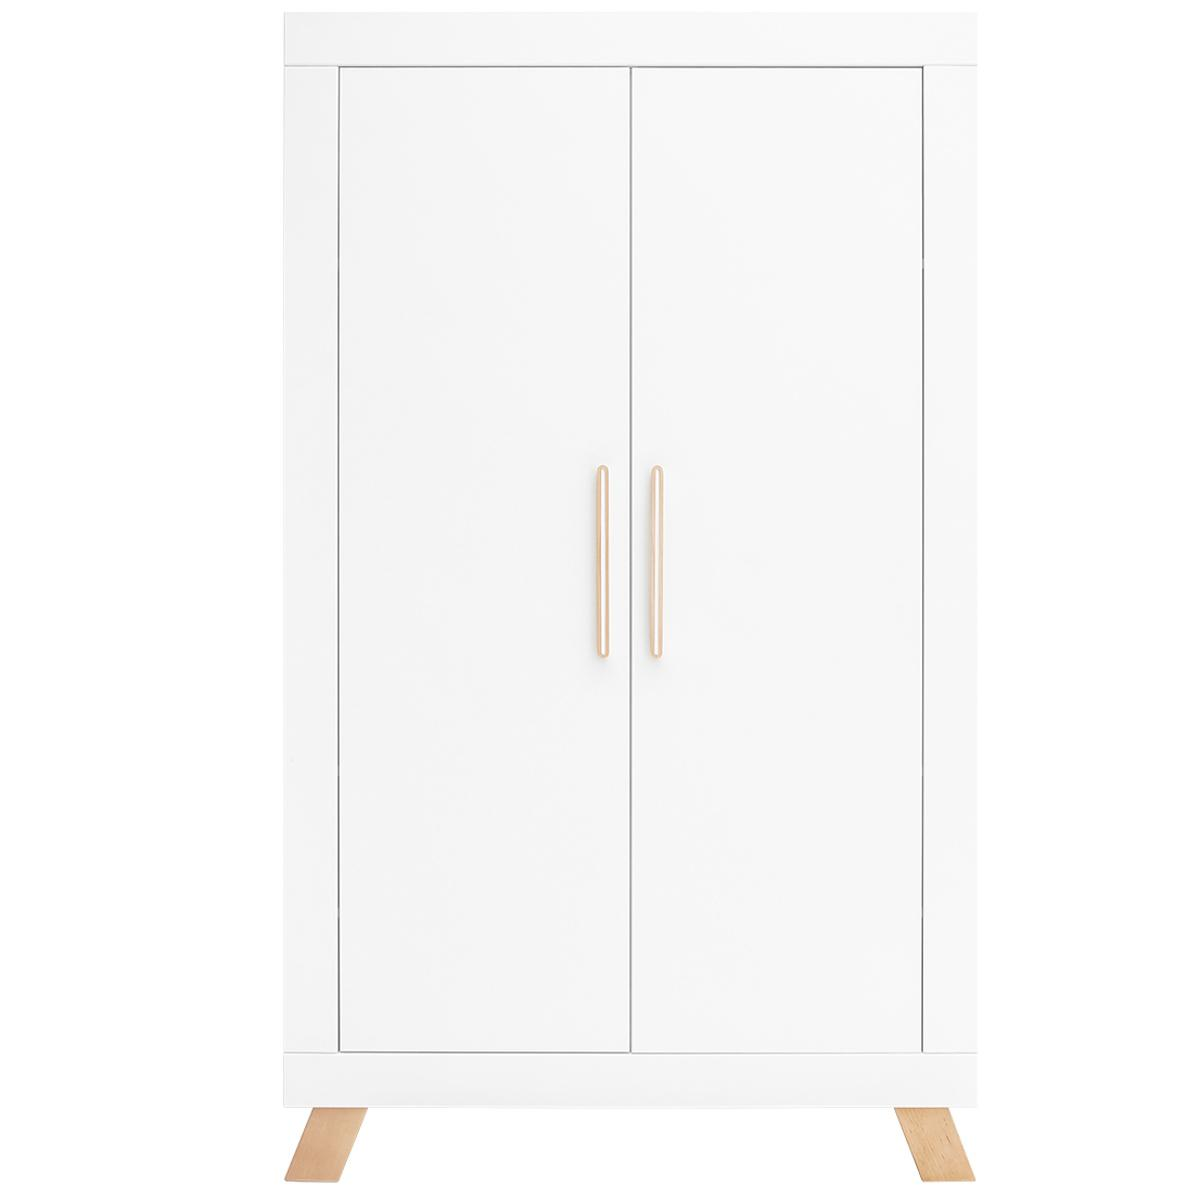 Armoire 2 portes LISA Bopita blanc-naturel